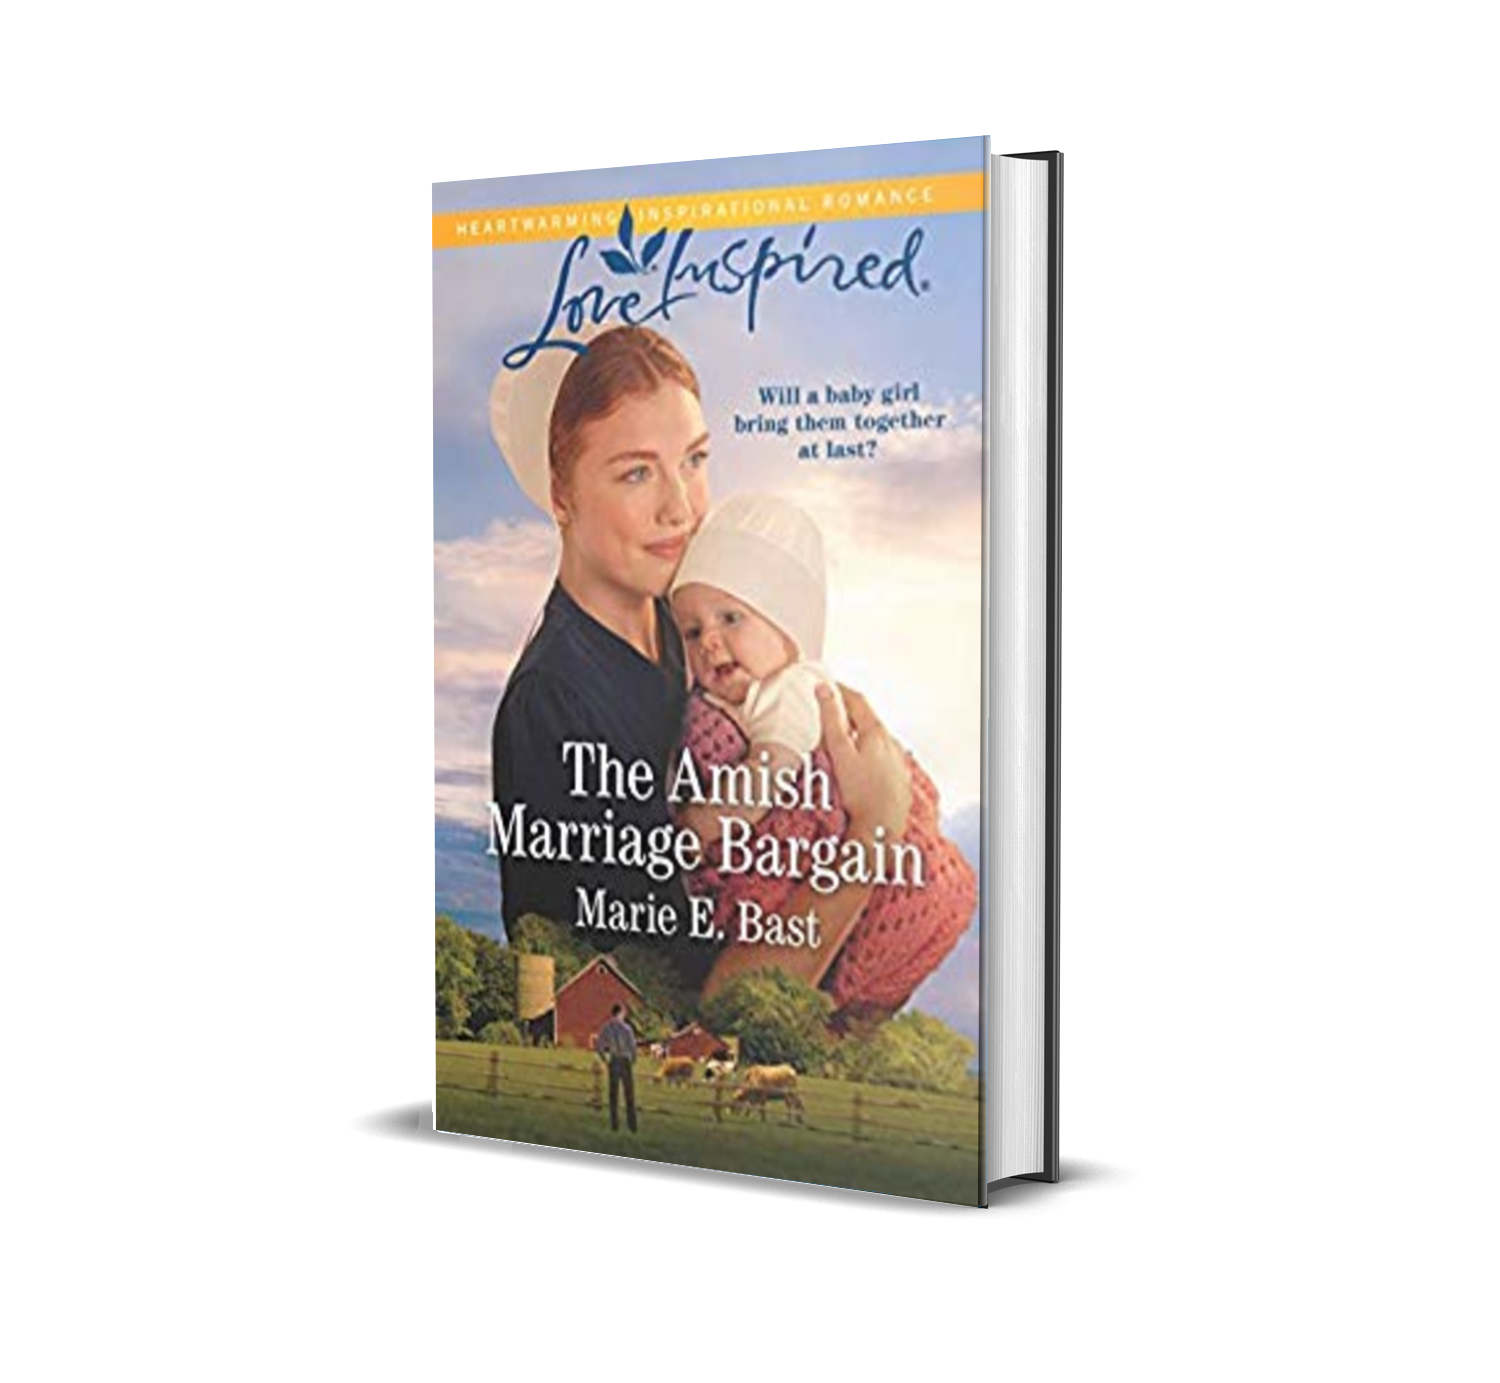 The Amish Marriage Bargain